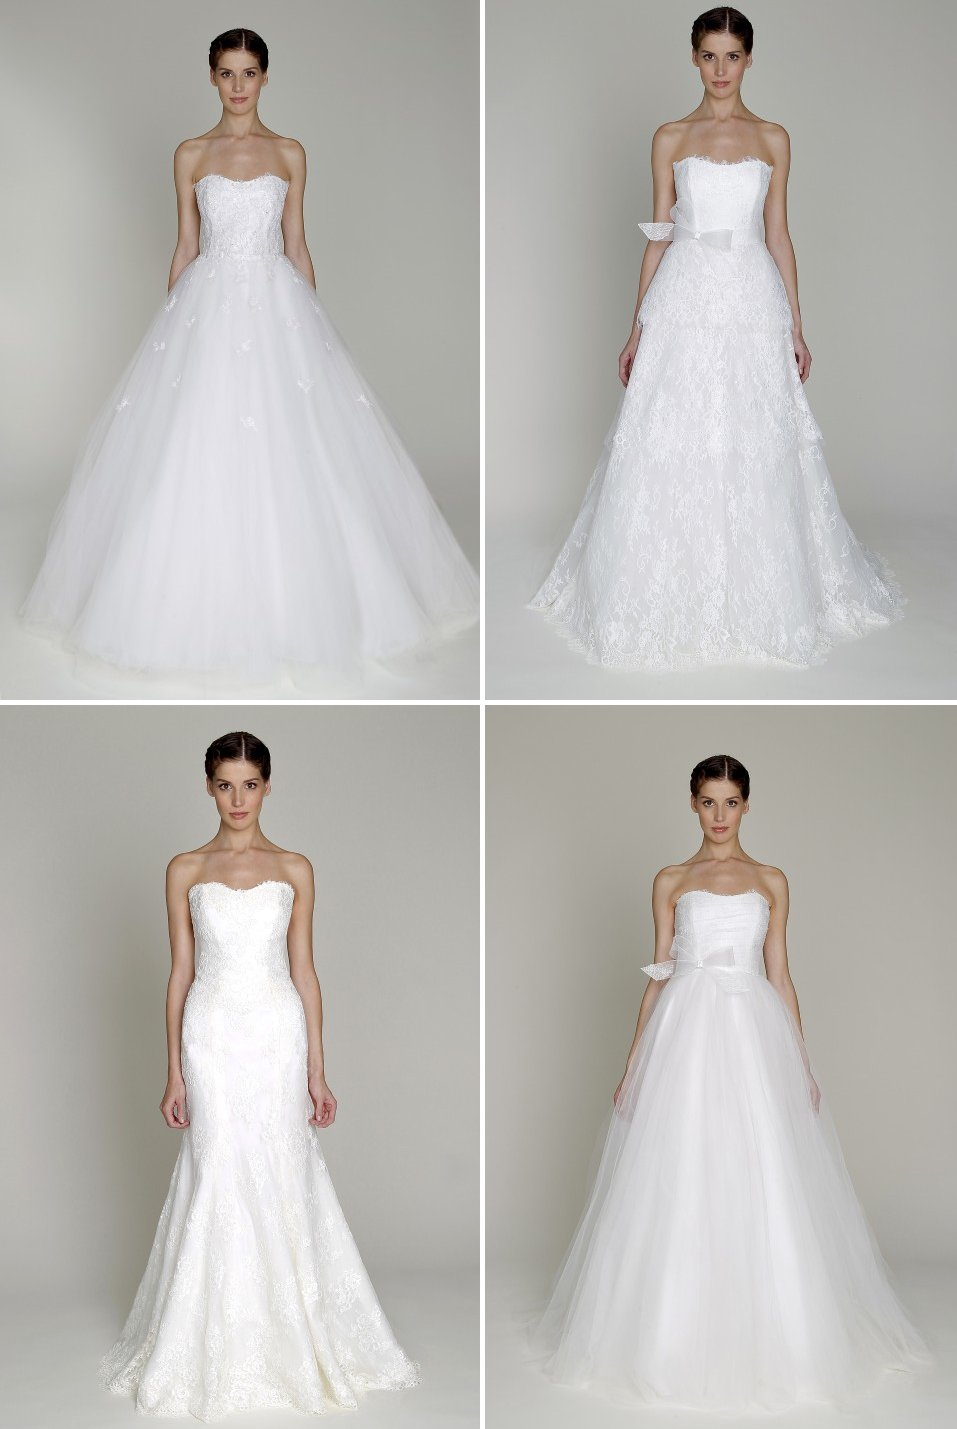 Affordable-designer-bridal-gowns-bliss-by-monique-lhuillier-wedding-dress-1.full